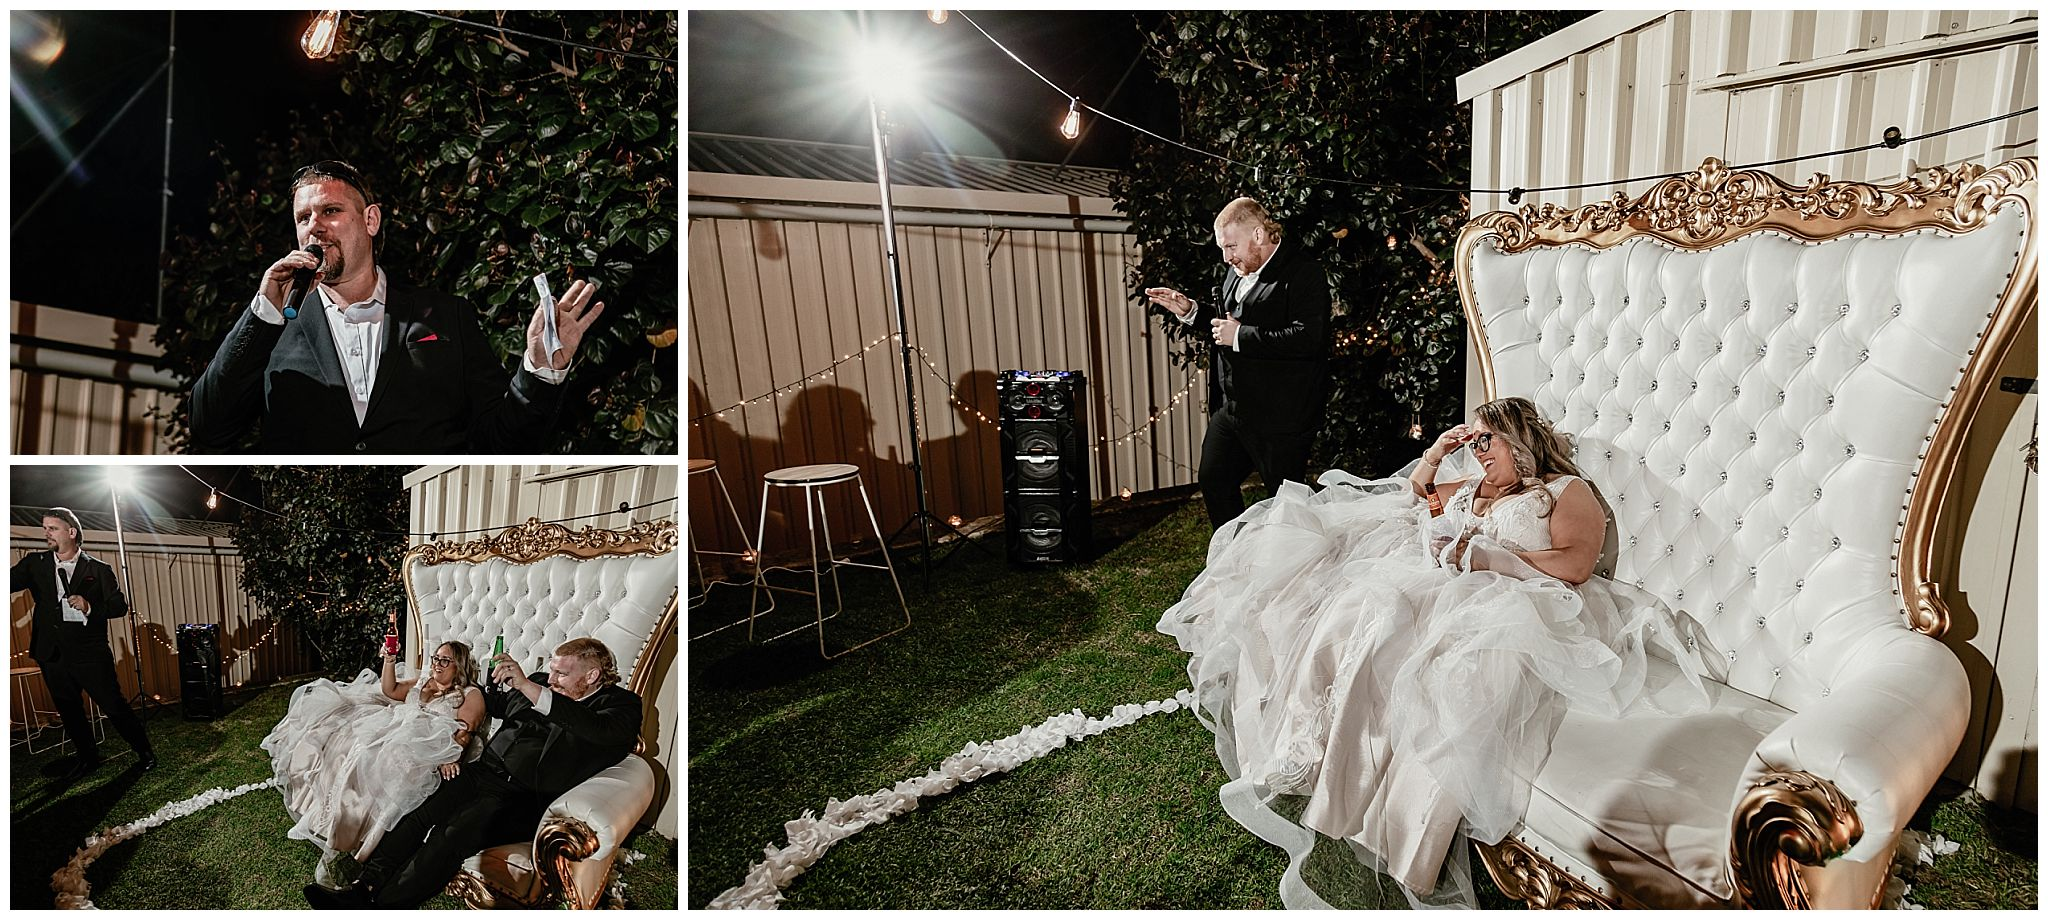 Perfect-intimate-home-wedding-reception